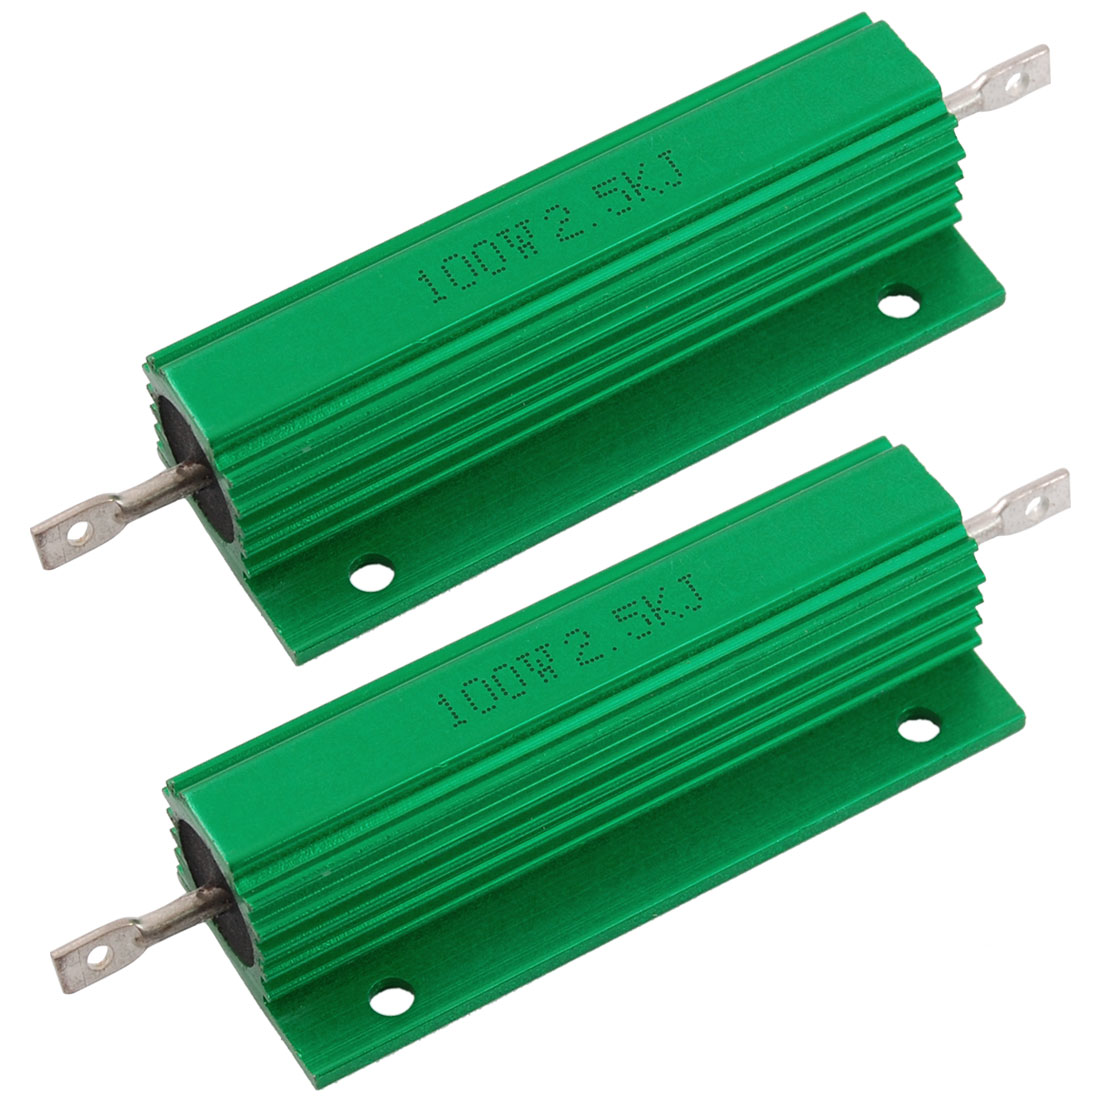 2 Pcs Green 100 Watt 2.5K Ohm 5% Aluminum Shell Wire Wound Resistors